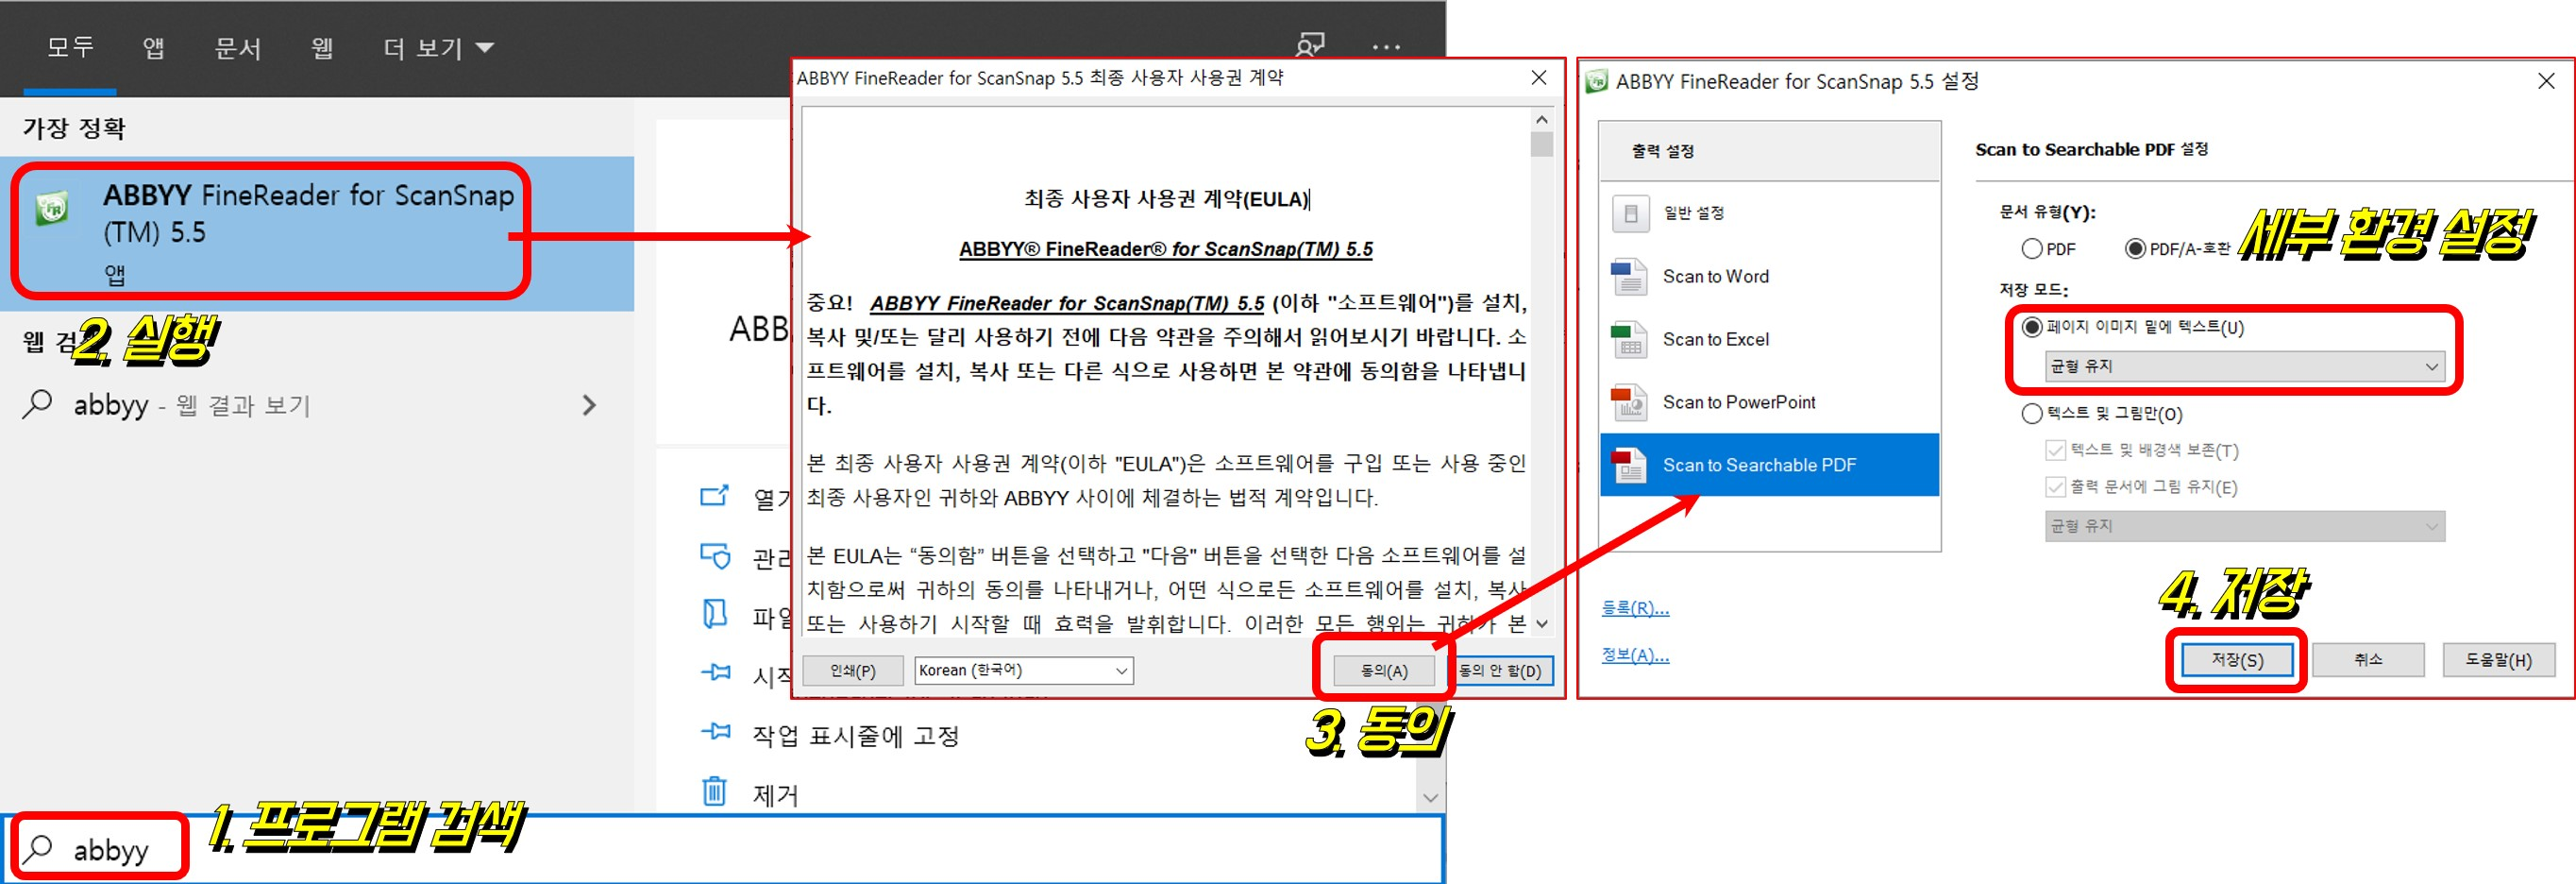 ABBYY FineReader TM 5.5 설정